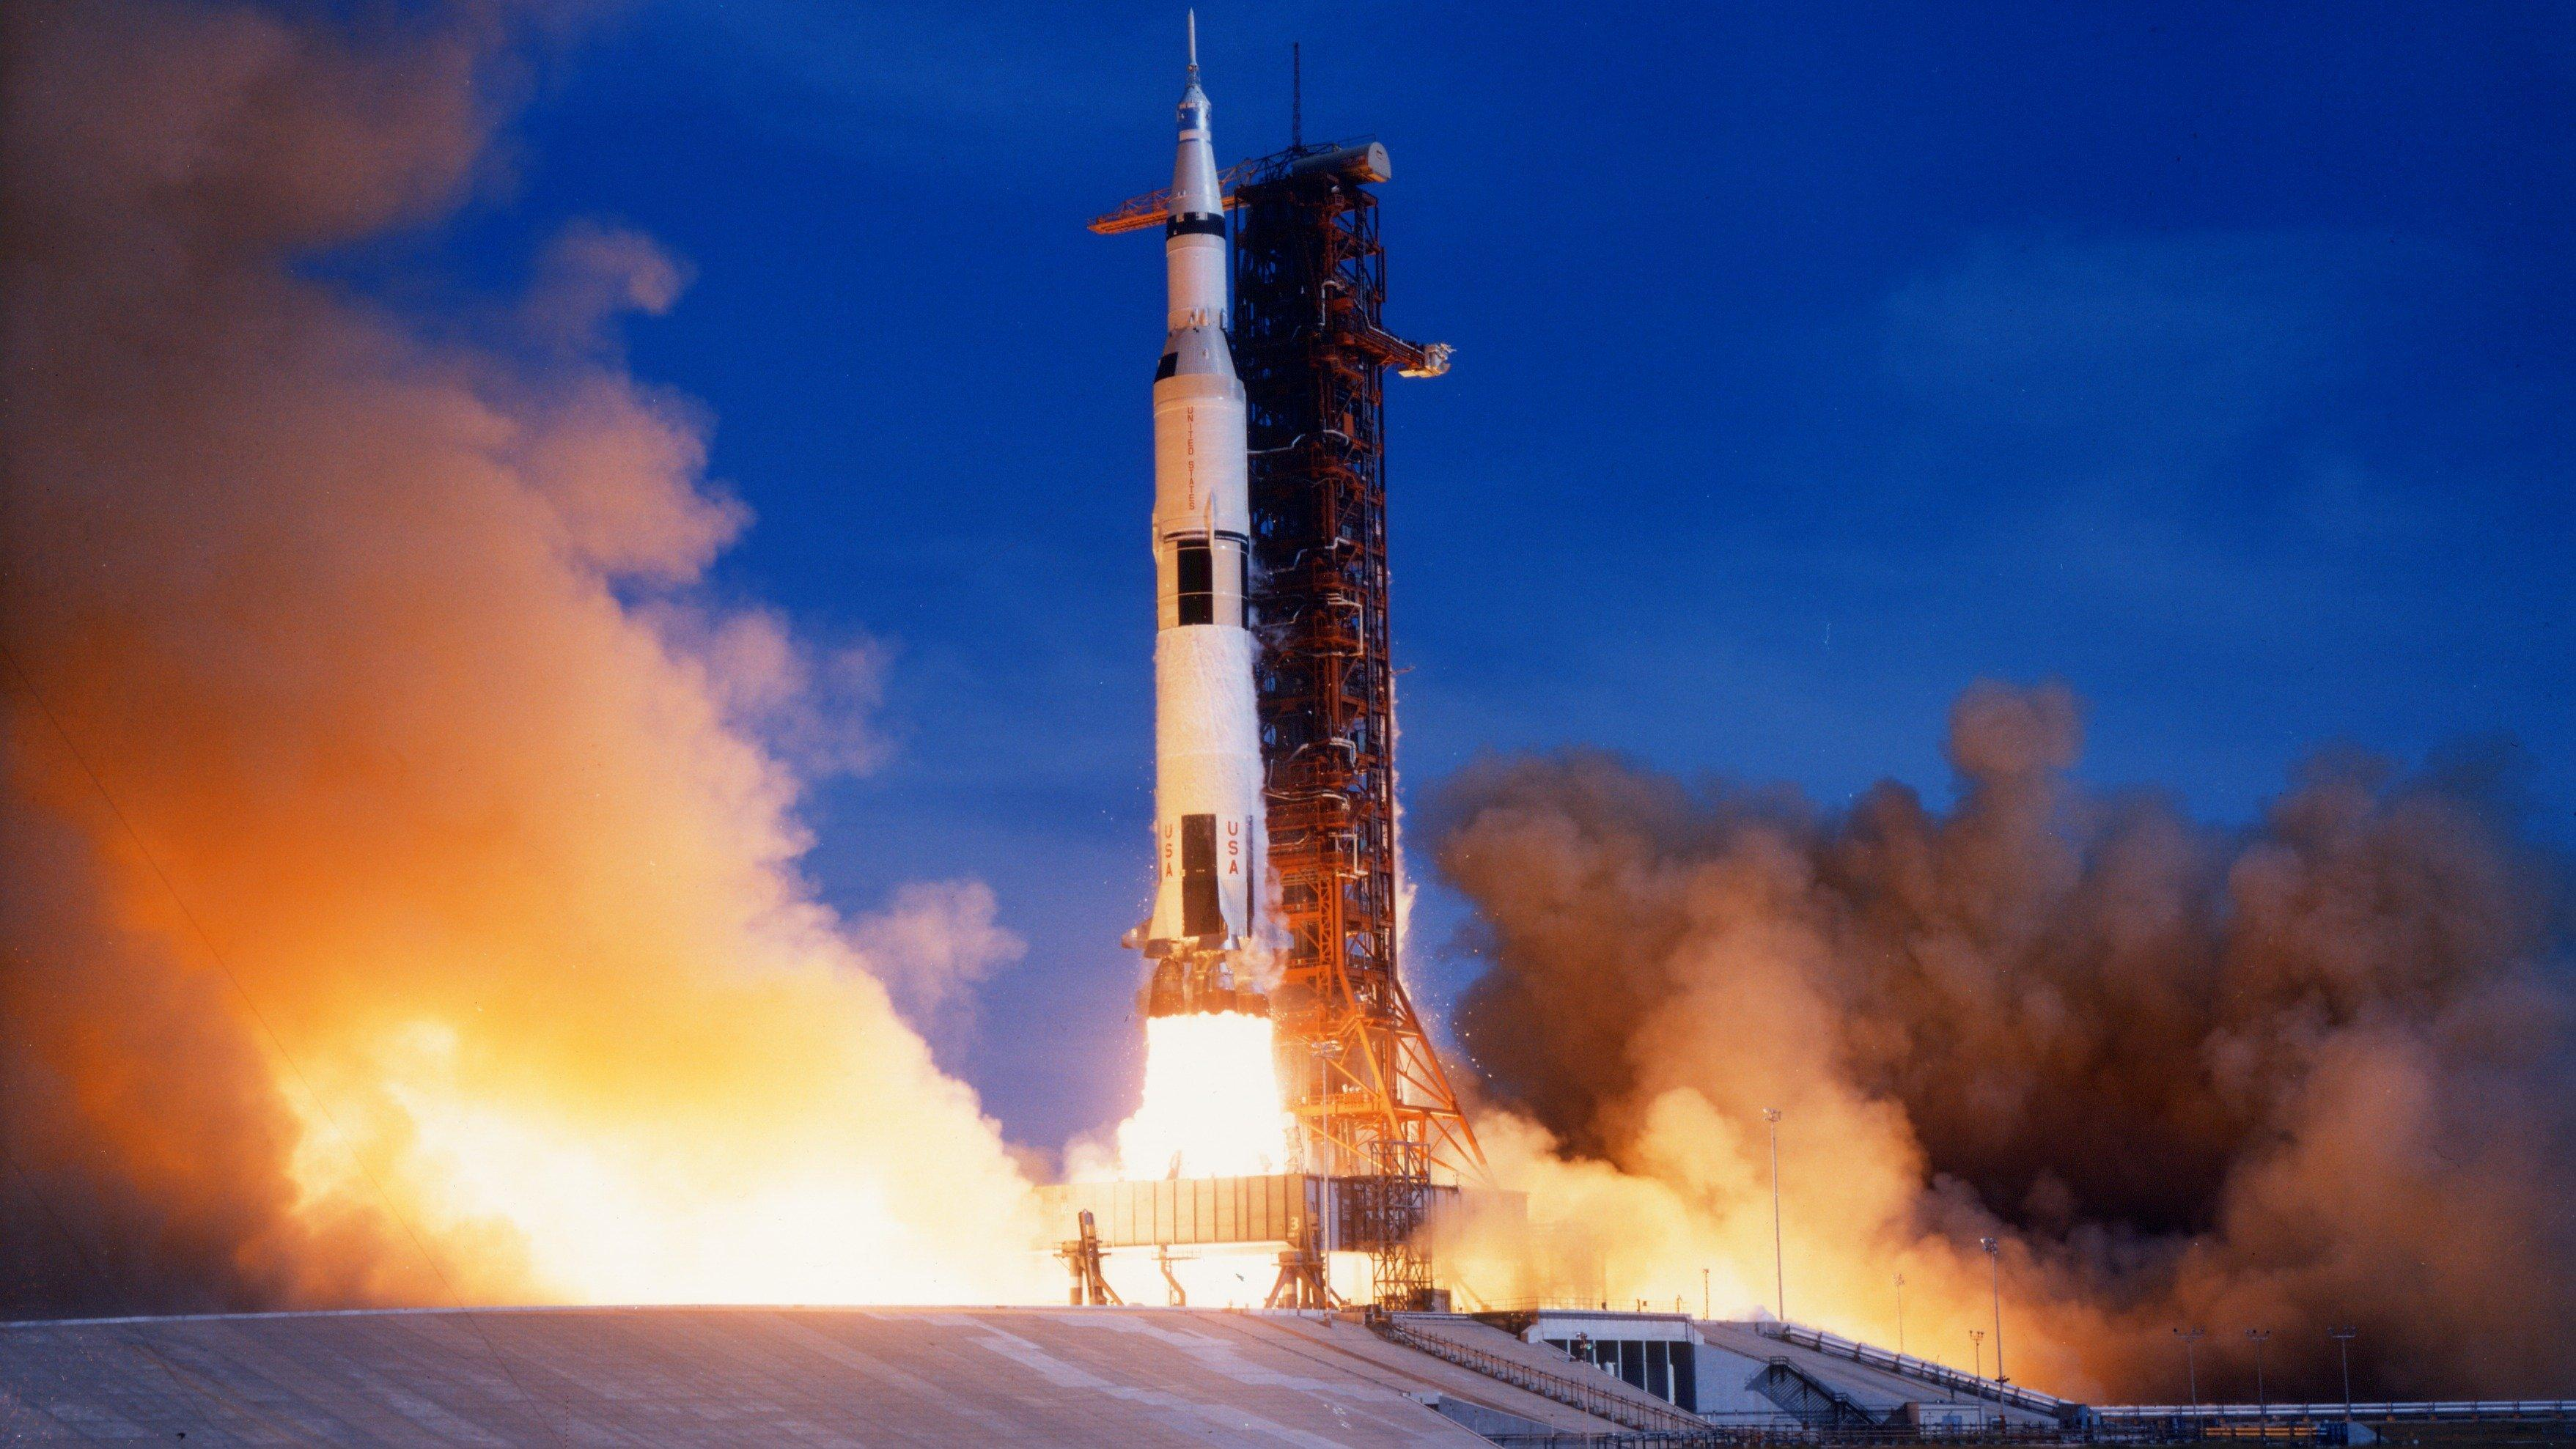 Rocket technology has been used for everything from powering whimsical toys to lifting humans into space